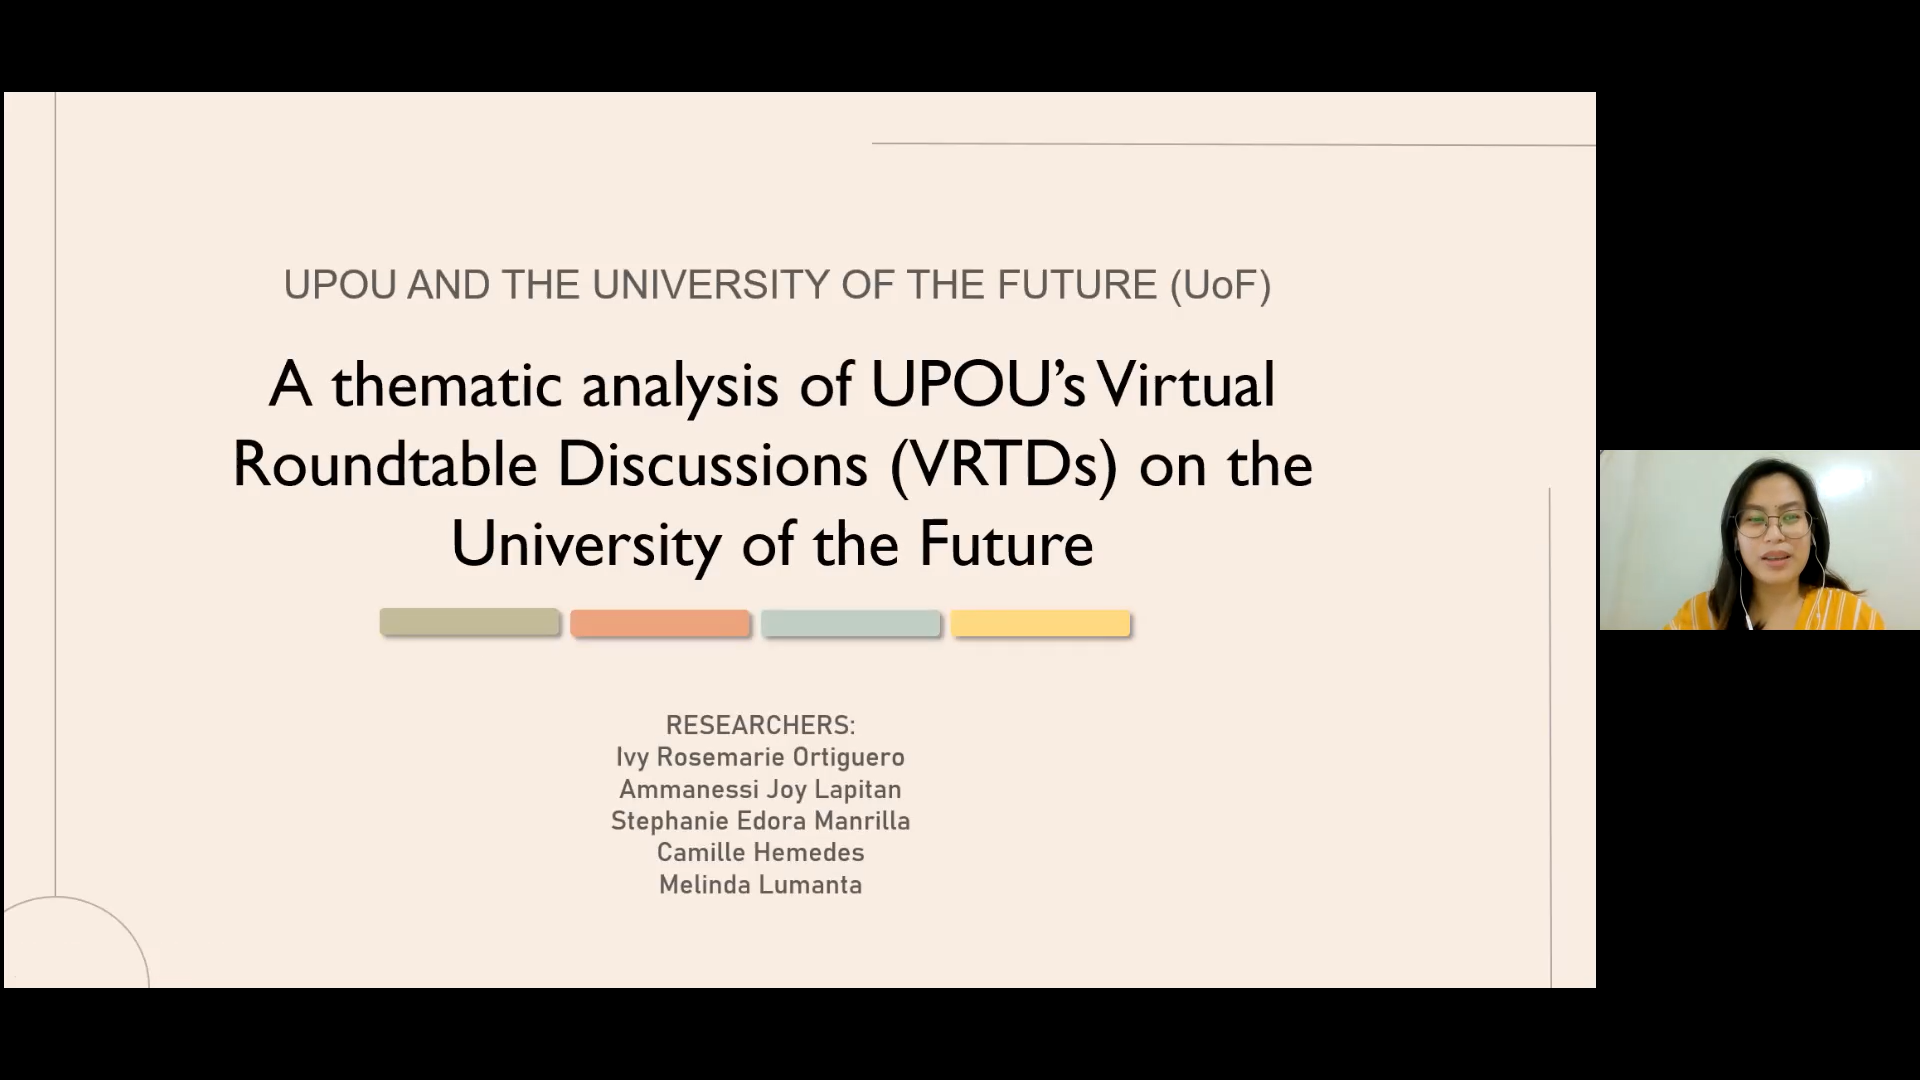 """Ms. Stephanie Manrilla presents """"A thematic analysis of UPOU's Virtual Roundtable Discussions (VRTDs) on the University of the Future"""" in Parallel Session 2A."""